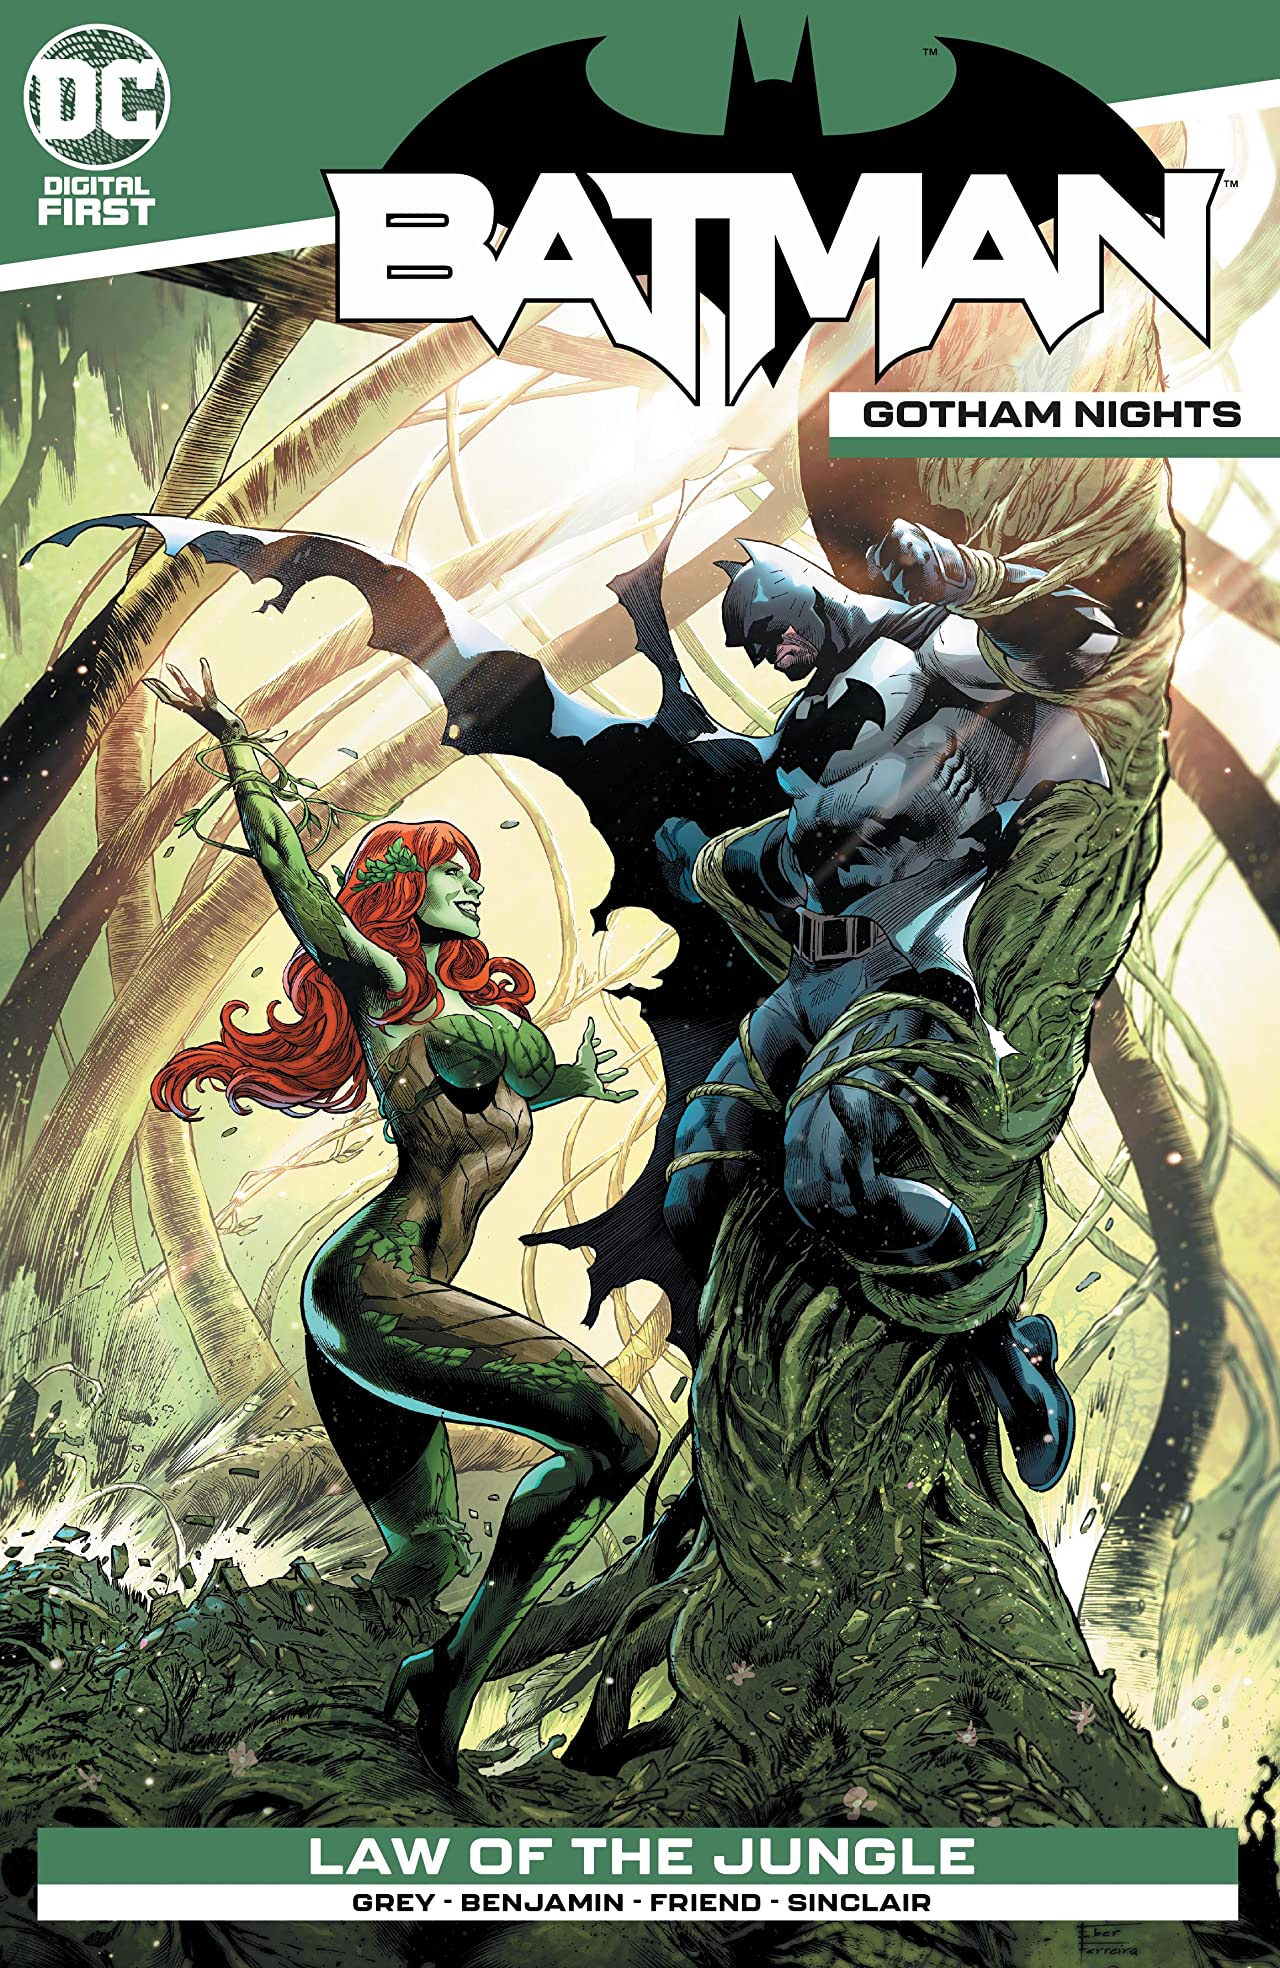 Batman: Gotham Nights #3